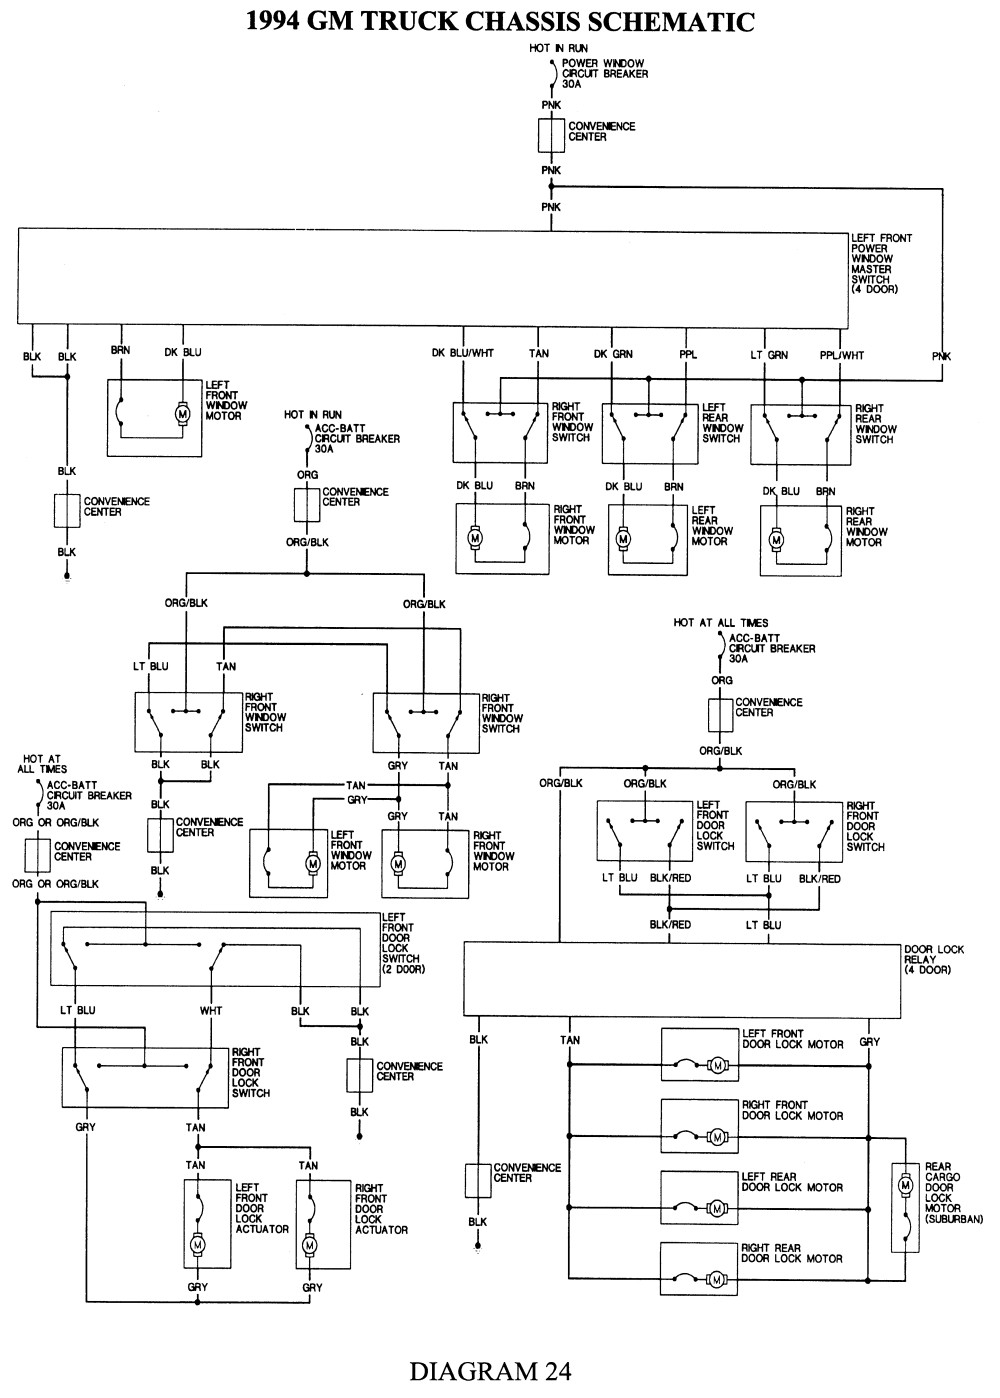 Chevy Trailer Plug Wiring Diagram from static-cdn.imageservice.cloud